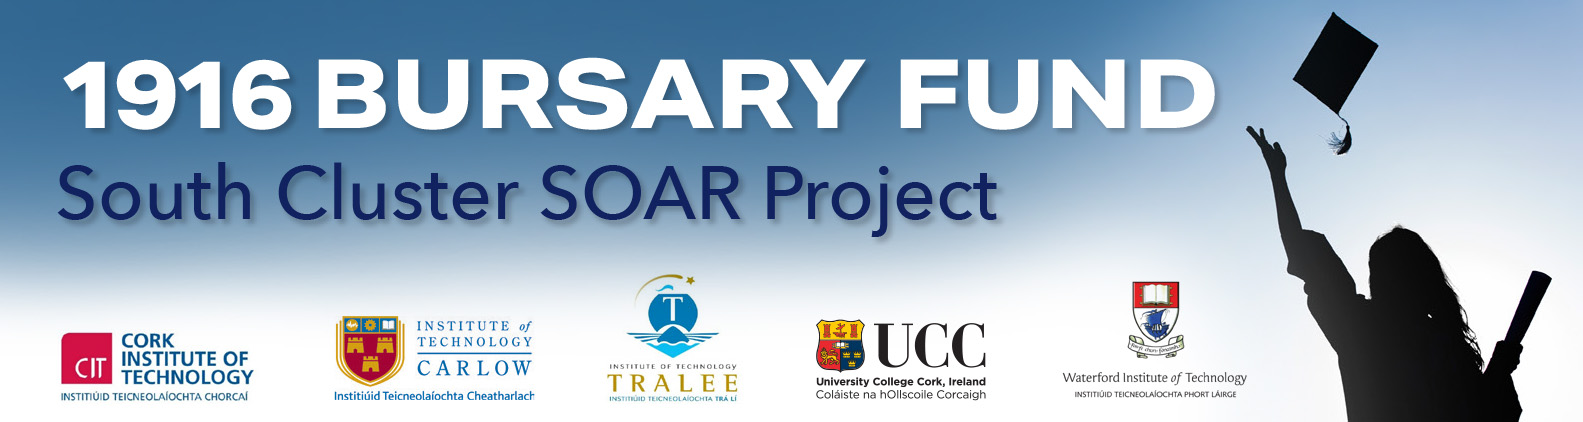 The 1916 Bursary Fund South Cluster SOAR Project